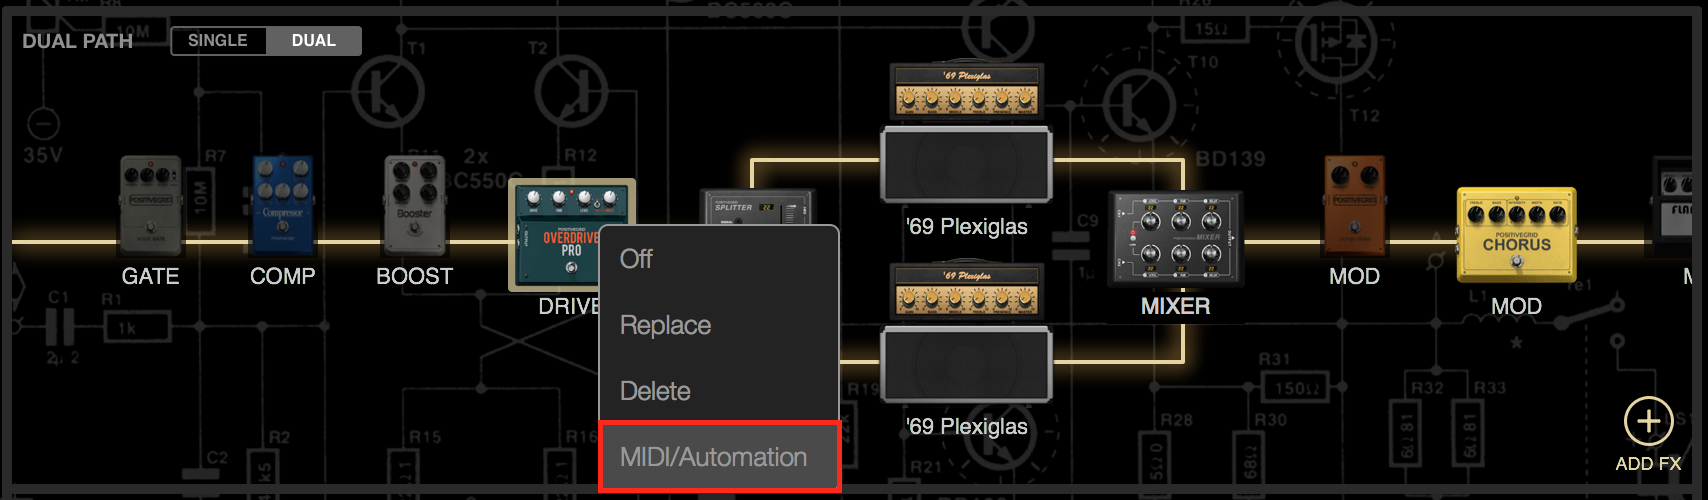 How to Control BIAS FX Plug-in with MIDI Controller in Logic